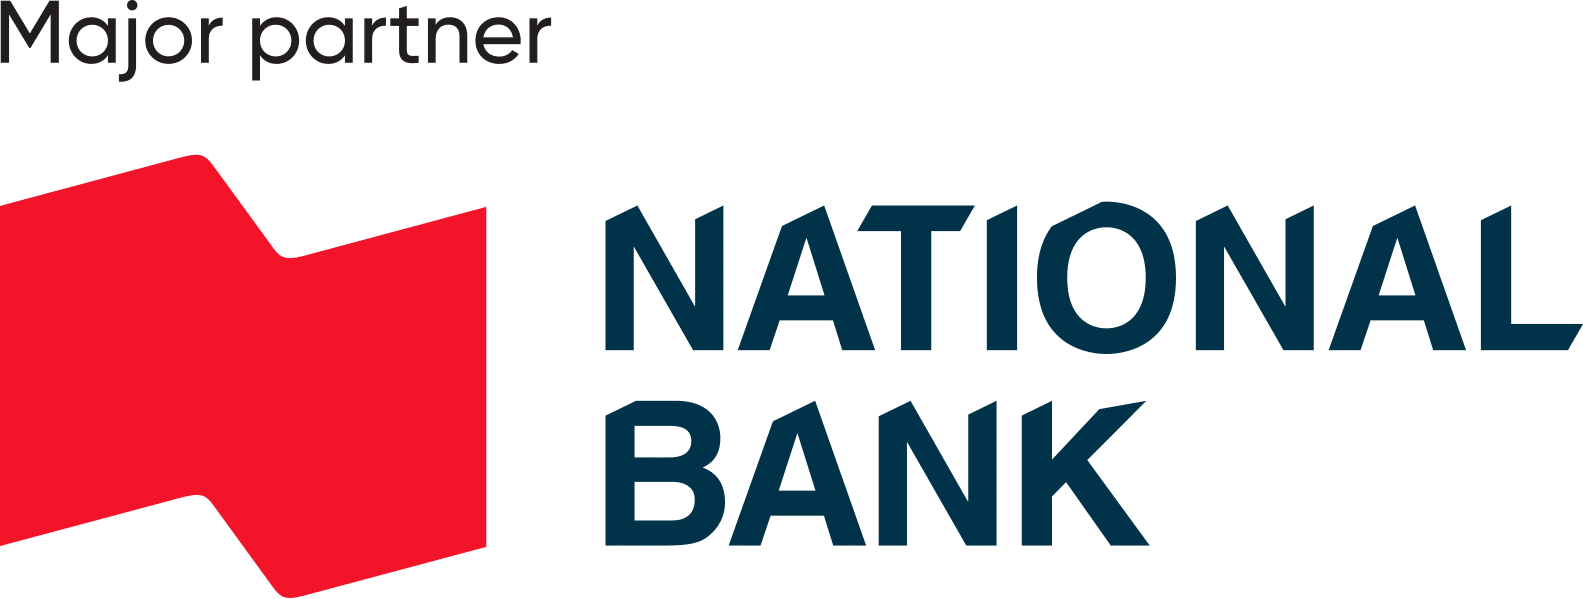 Visit National Bank's website